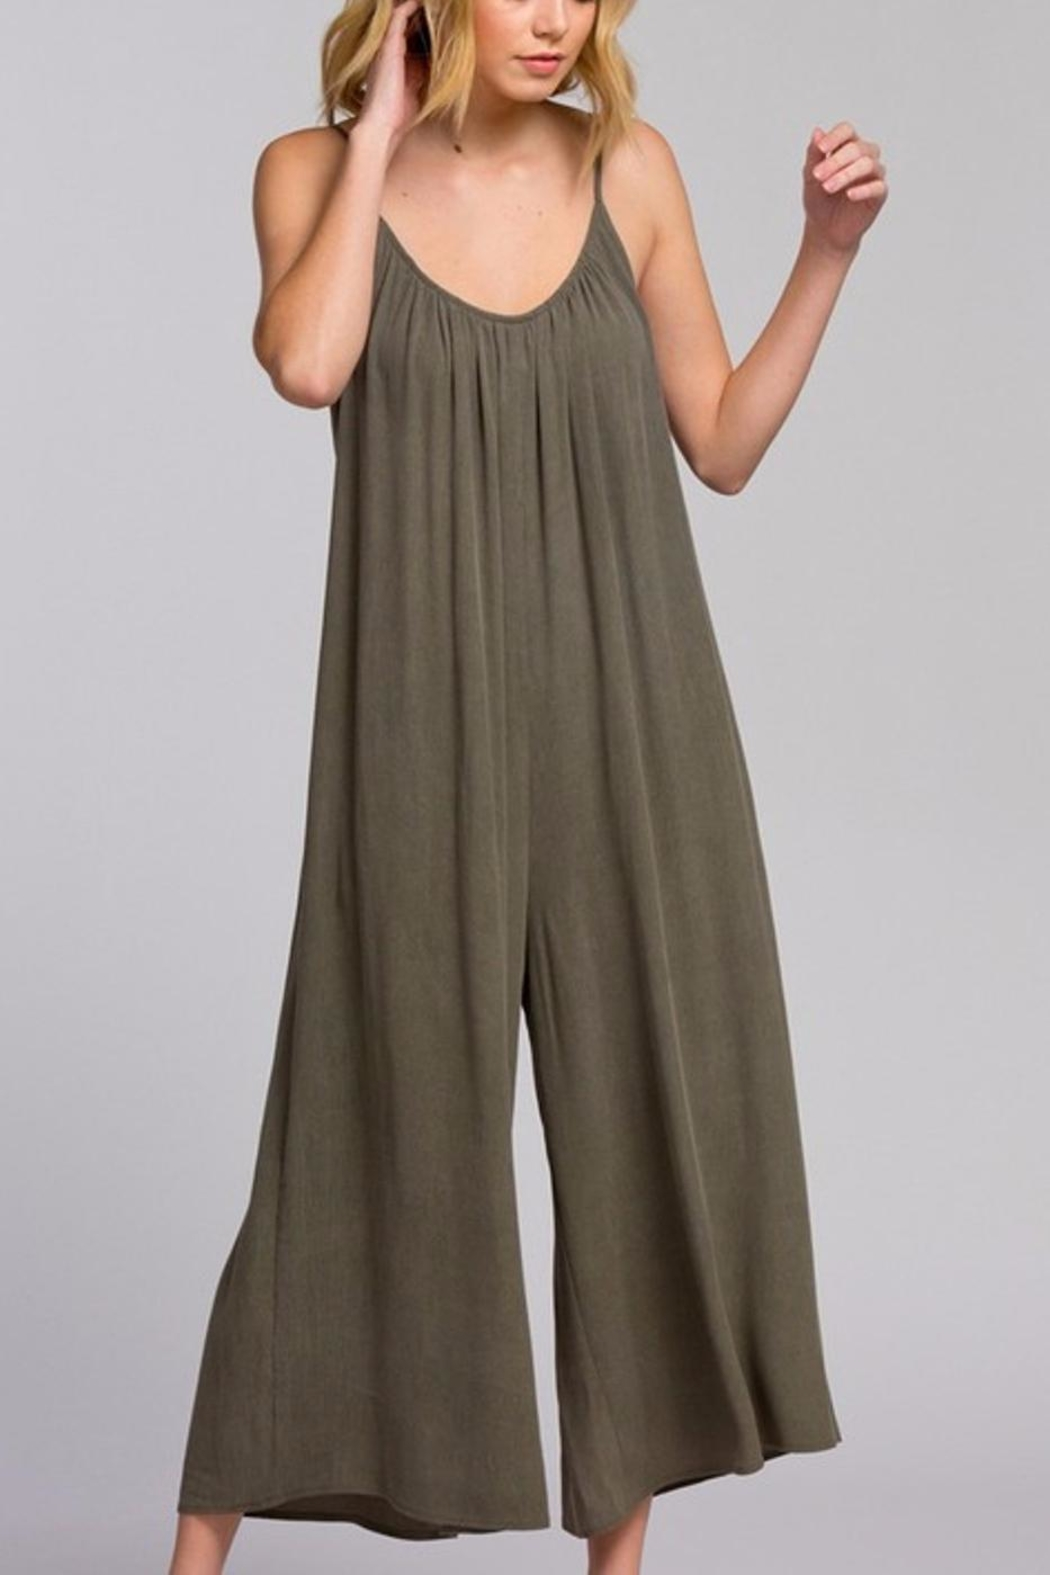 Cherish Loose Fit Jumpsuit From Massachusetts By Addicted